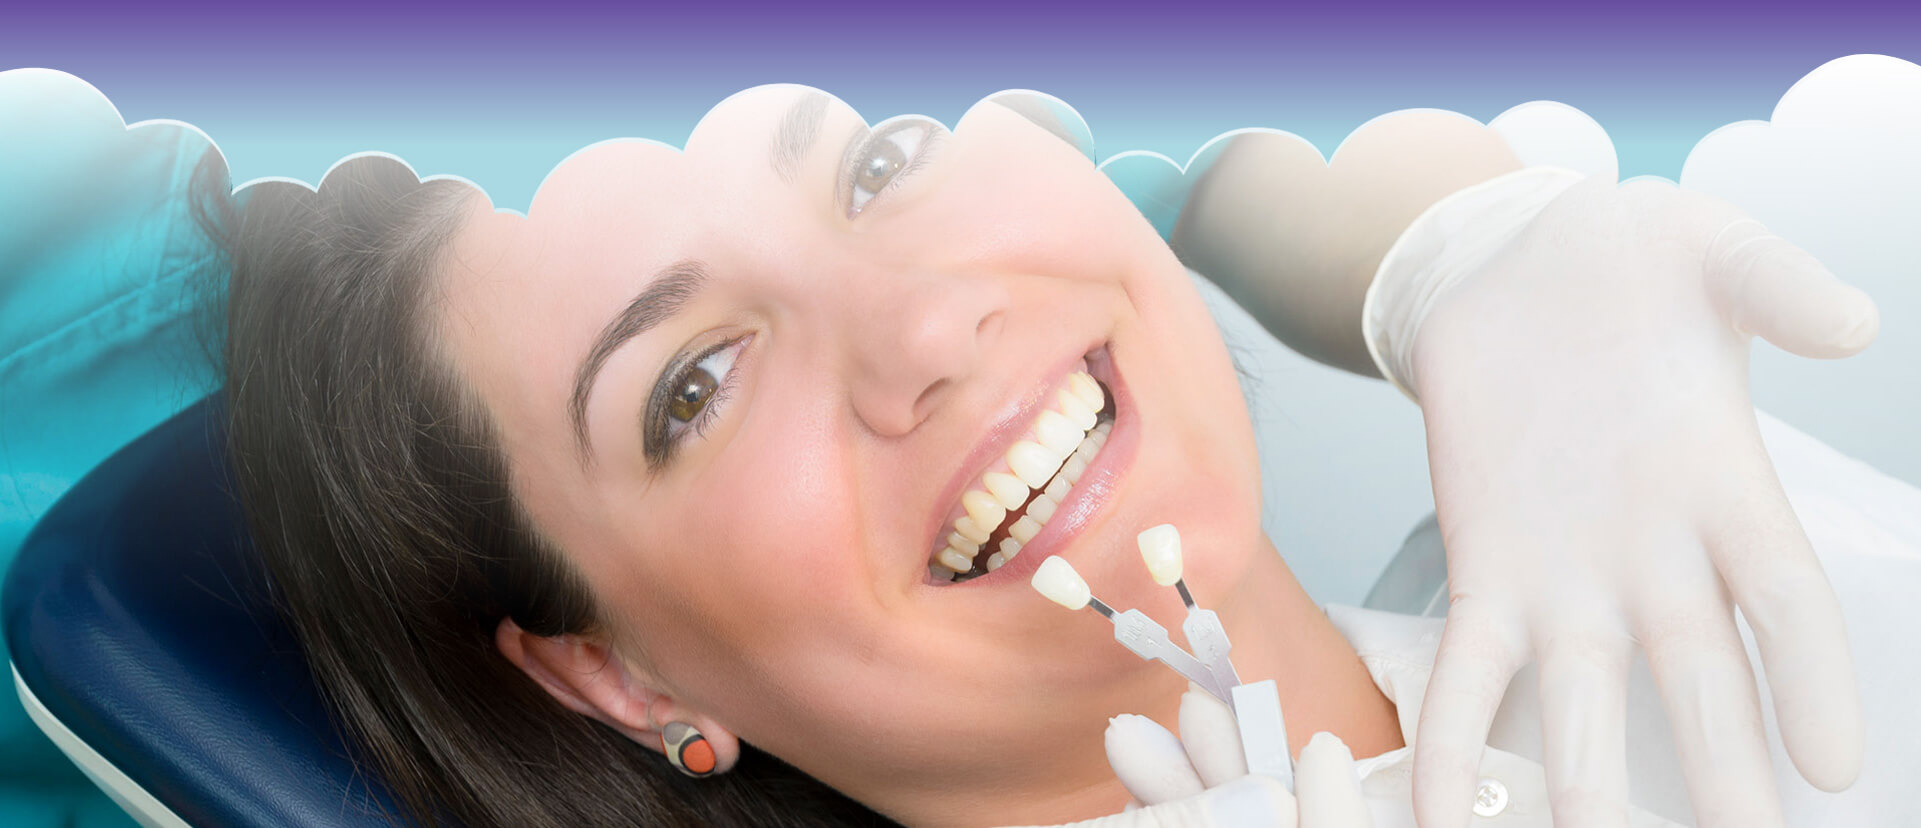 Young smiling female patient getting her teeth compared with porcelain veneers